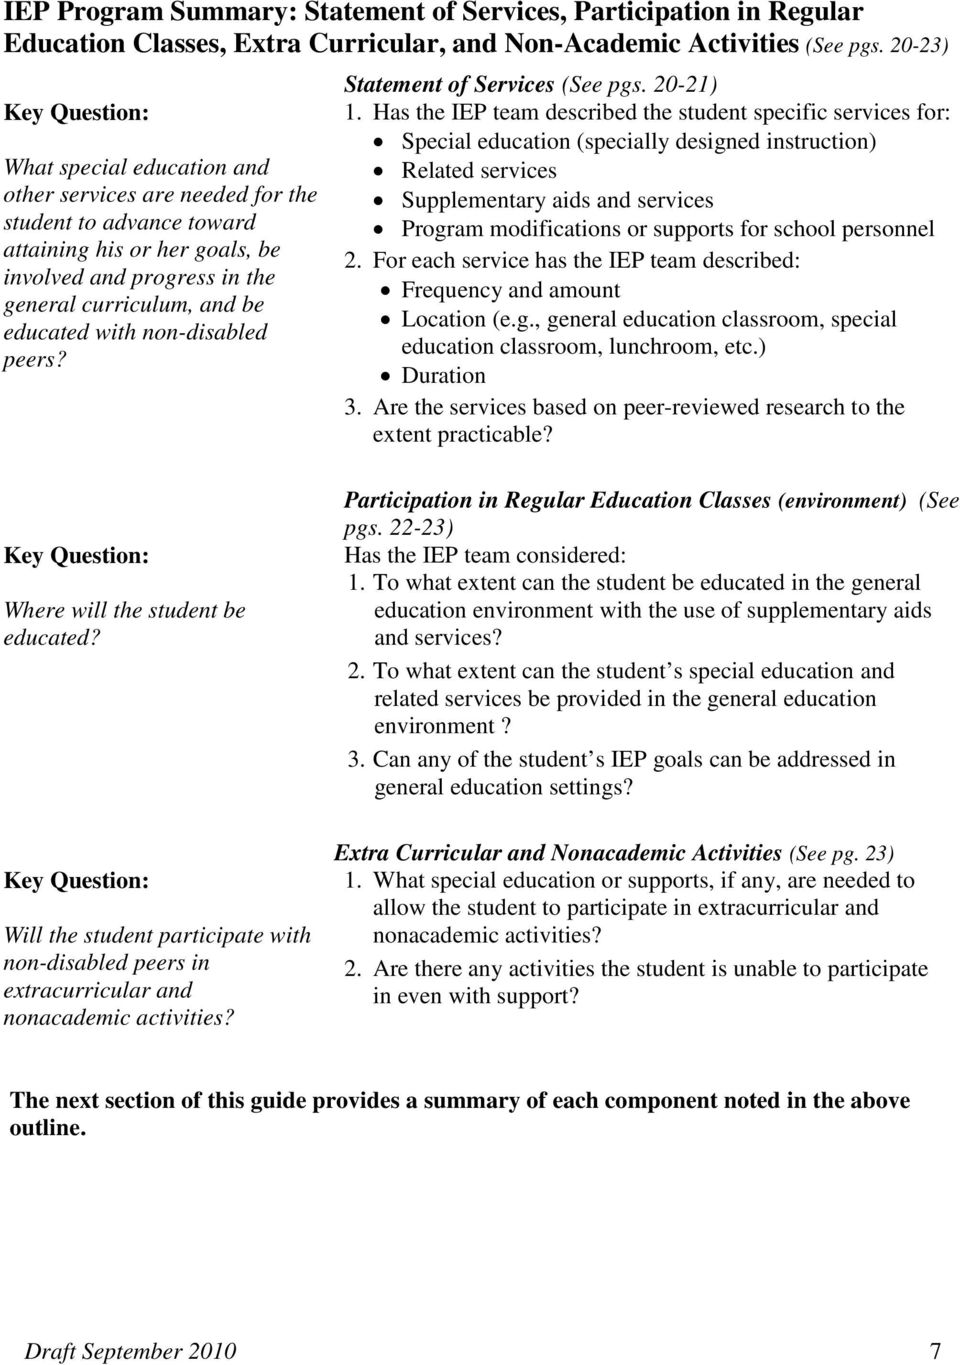 educated with non-disabled peers? Statement of Services (See pgs. 20-21) 1.